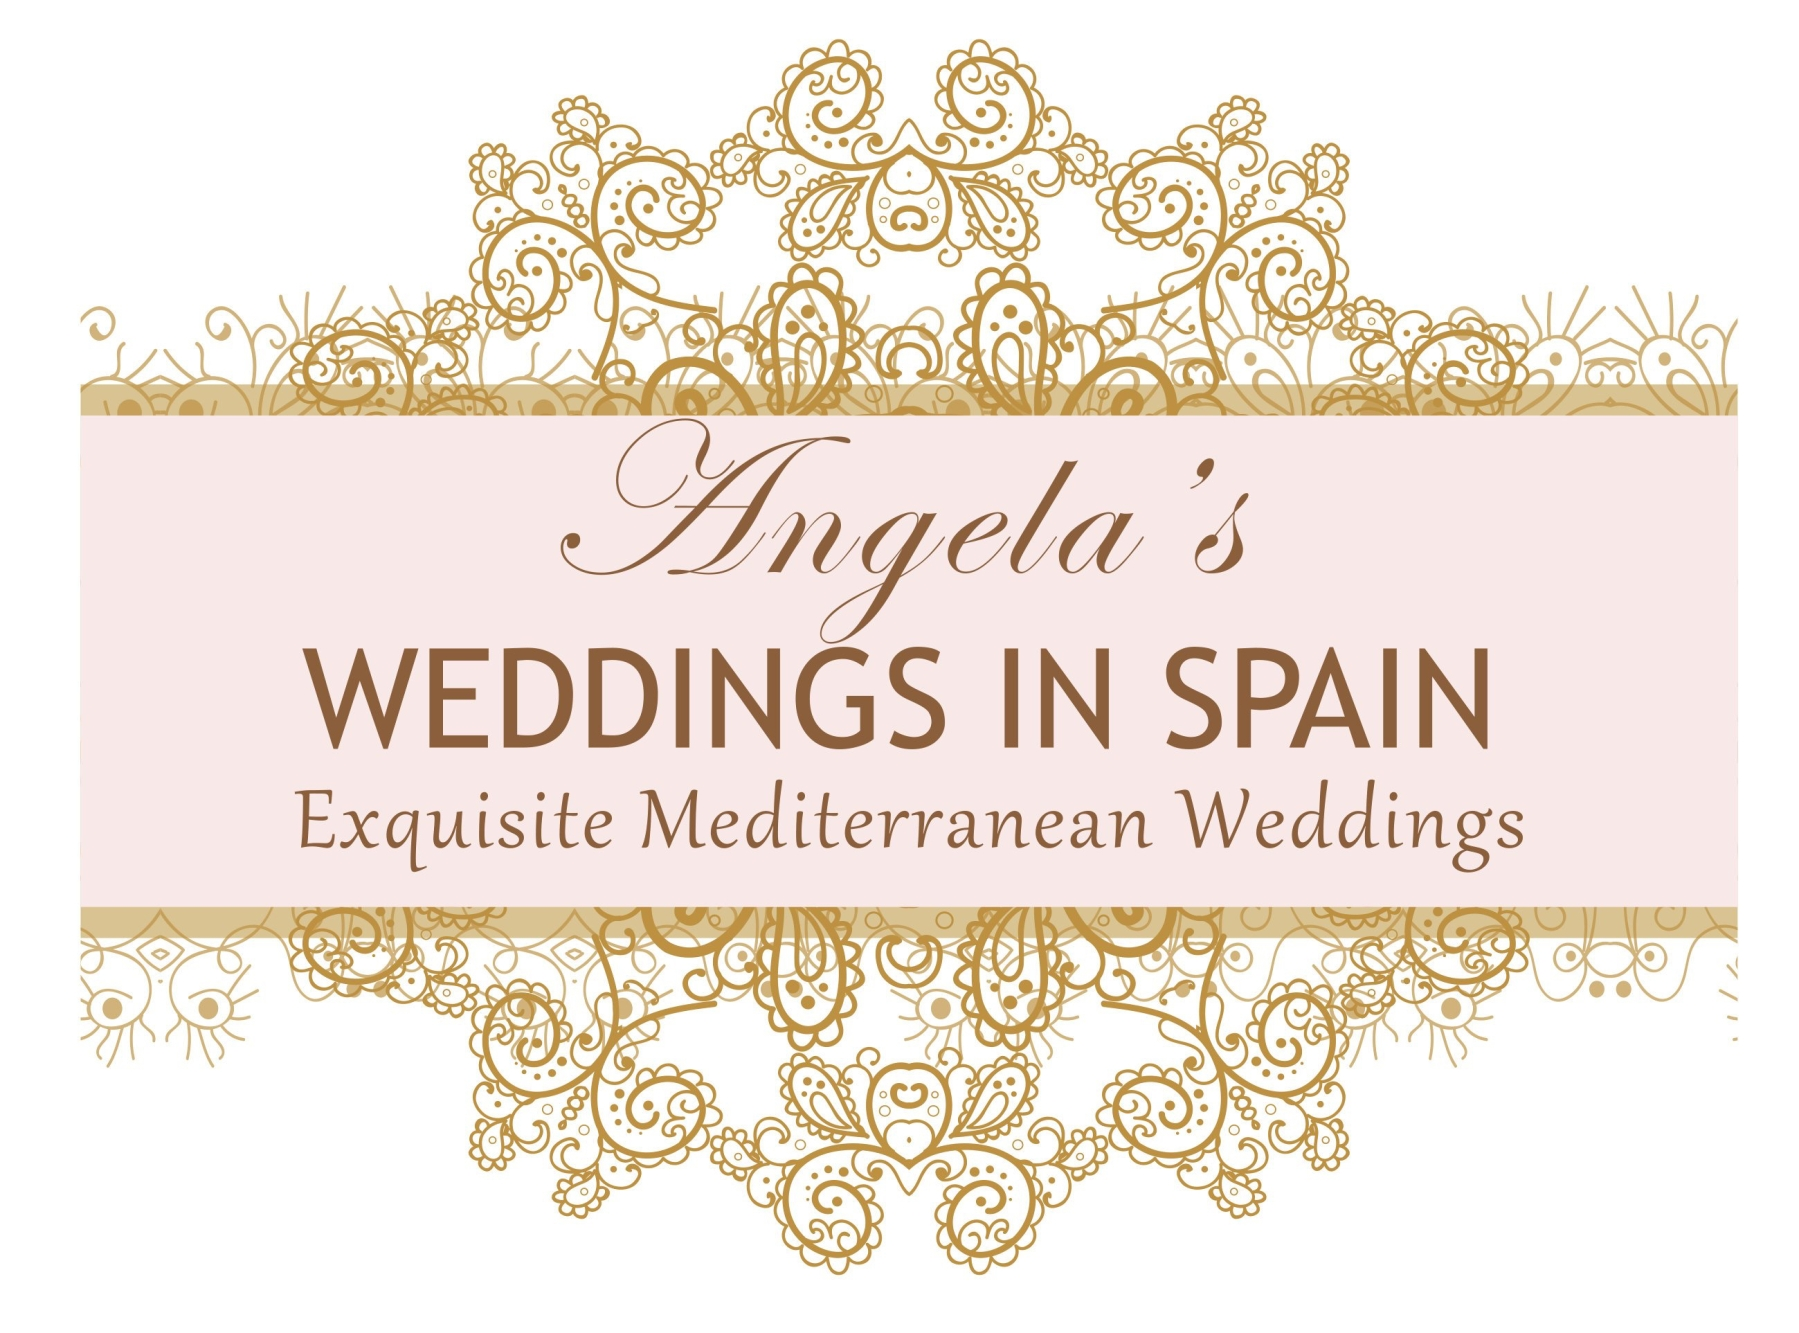 Weddings in Spain, Exquisite Mediterranean Weddings, Logo